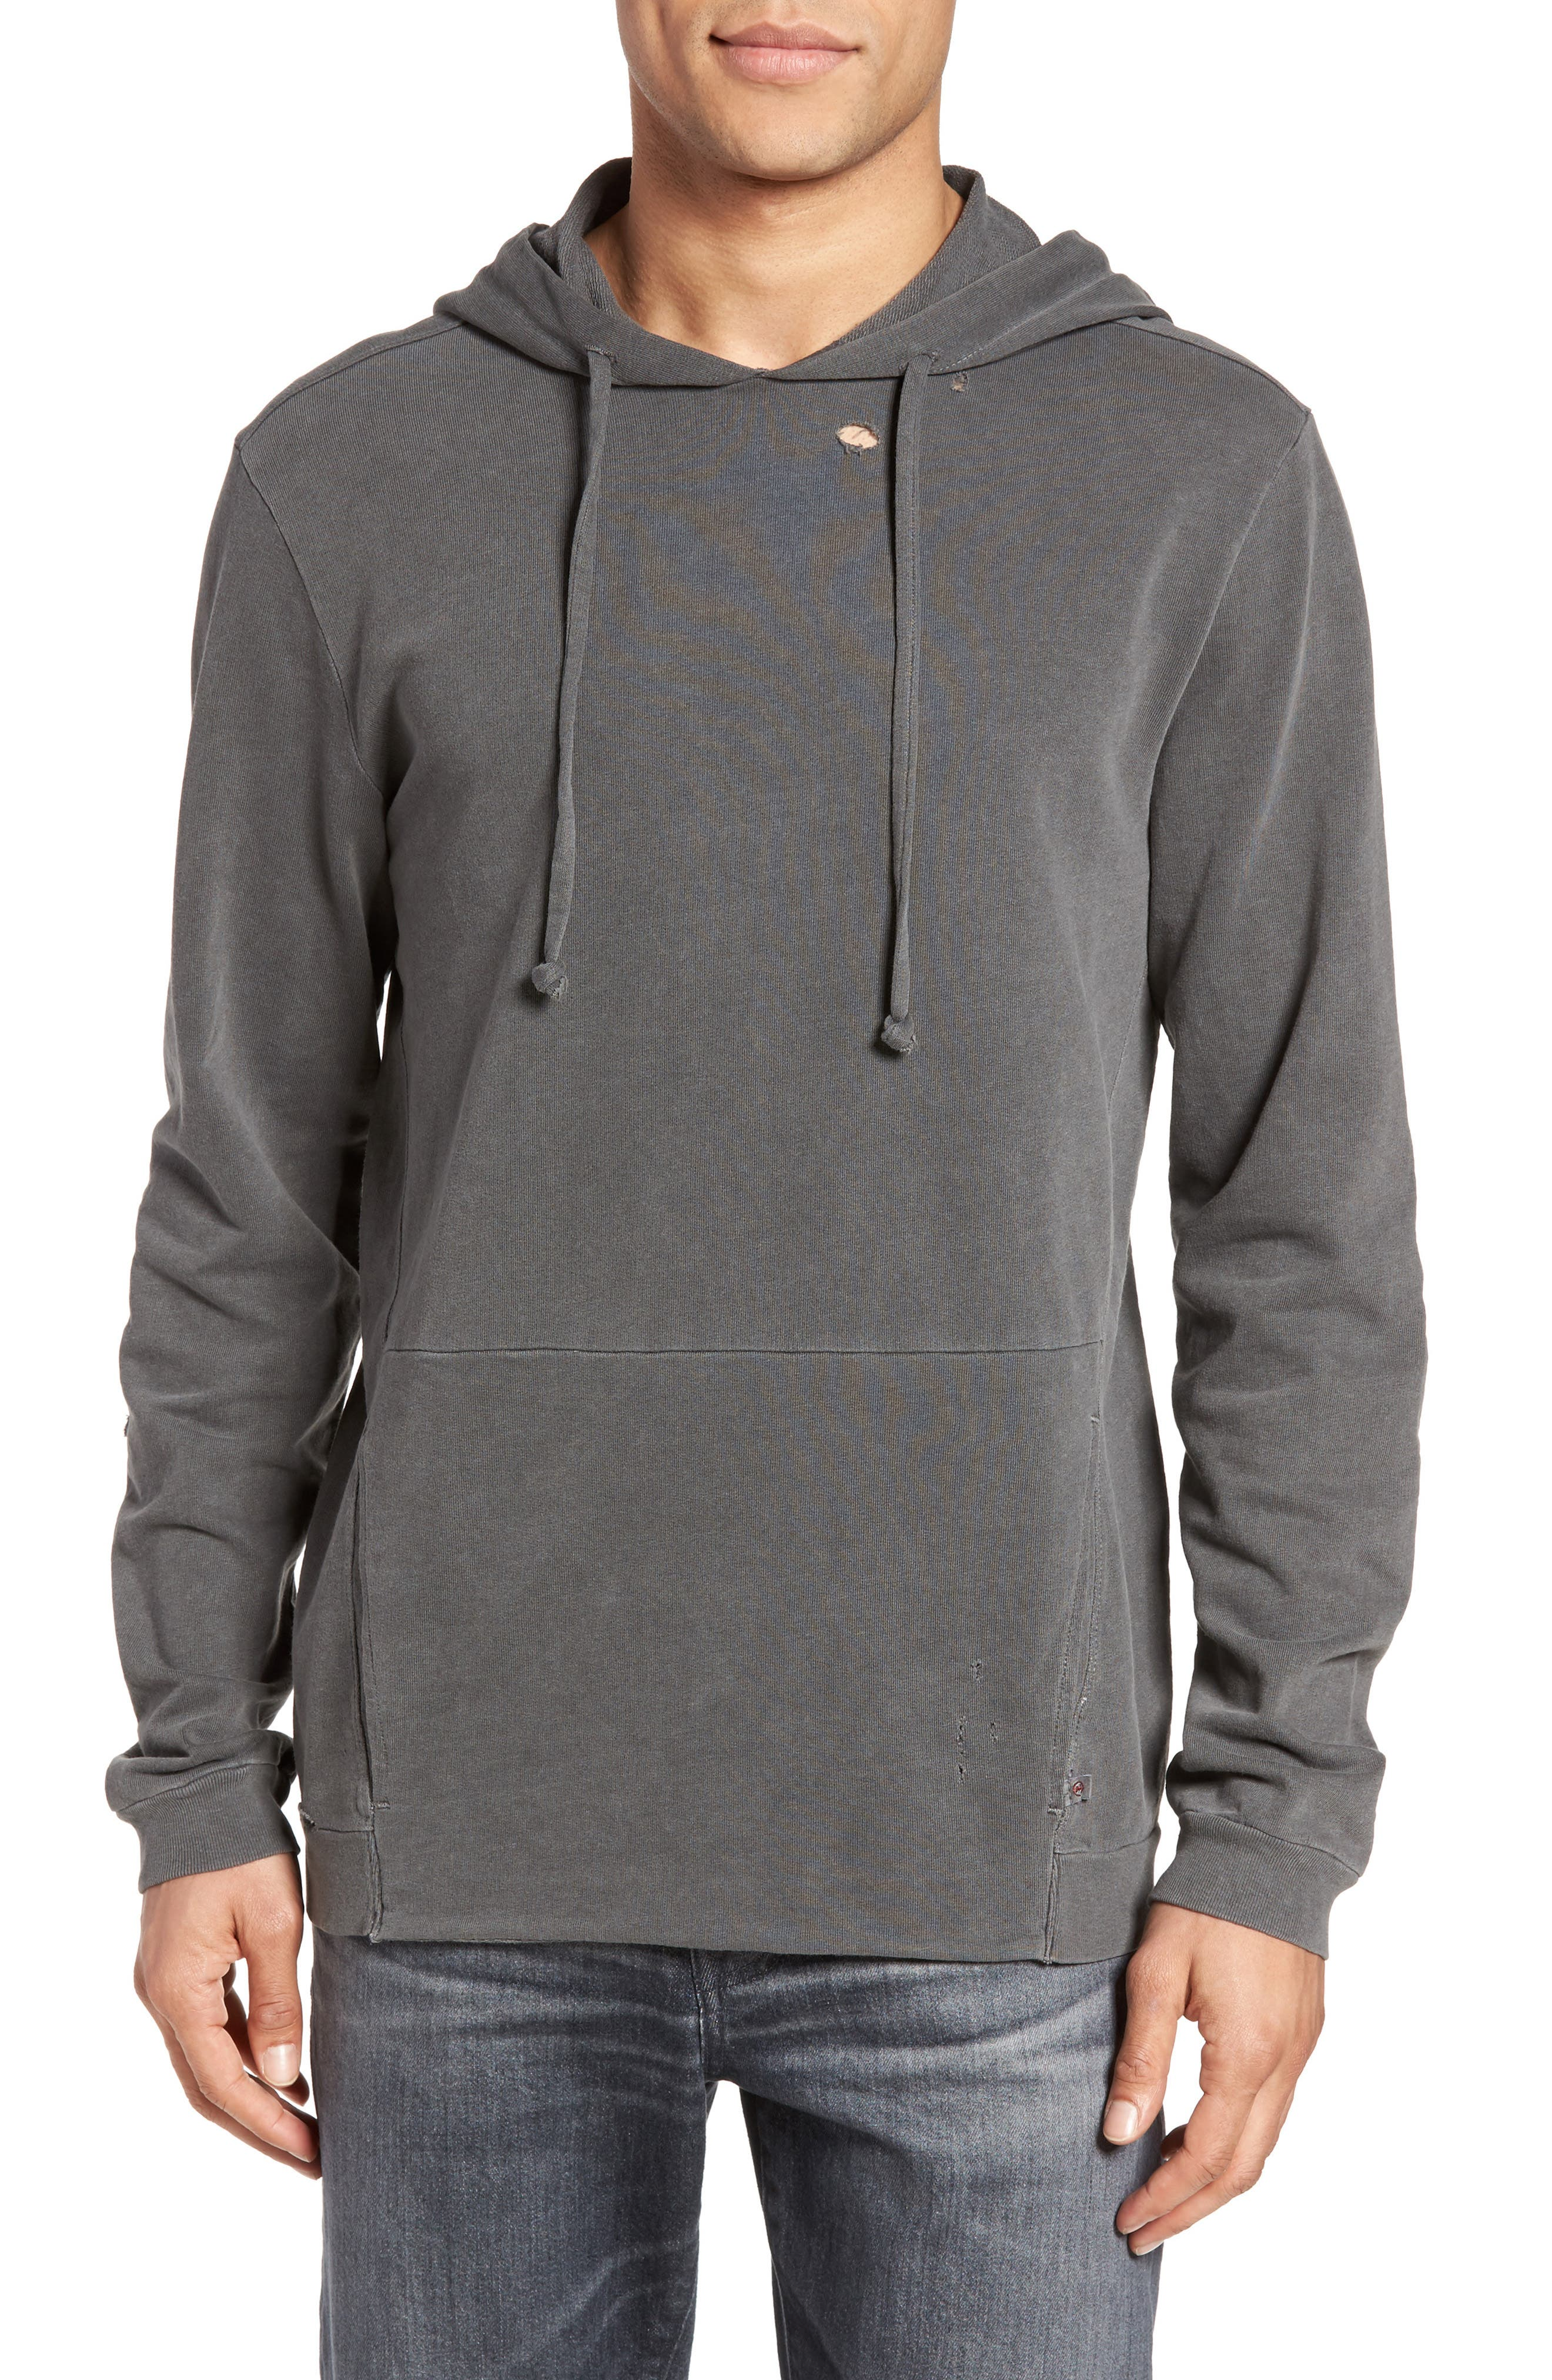 Eloi Pullover Hoodie,                             Main thumbnail 1, color,                             Pigment True Black